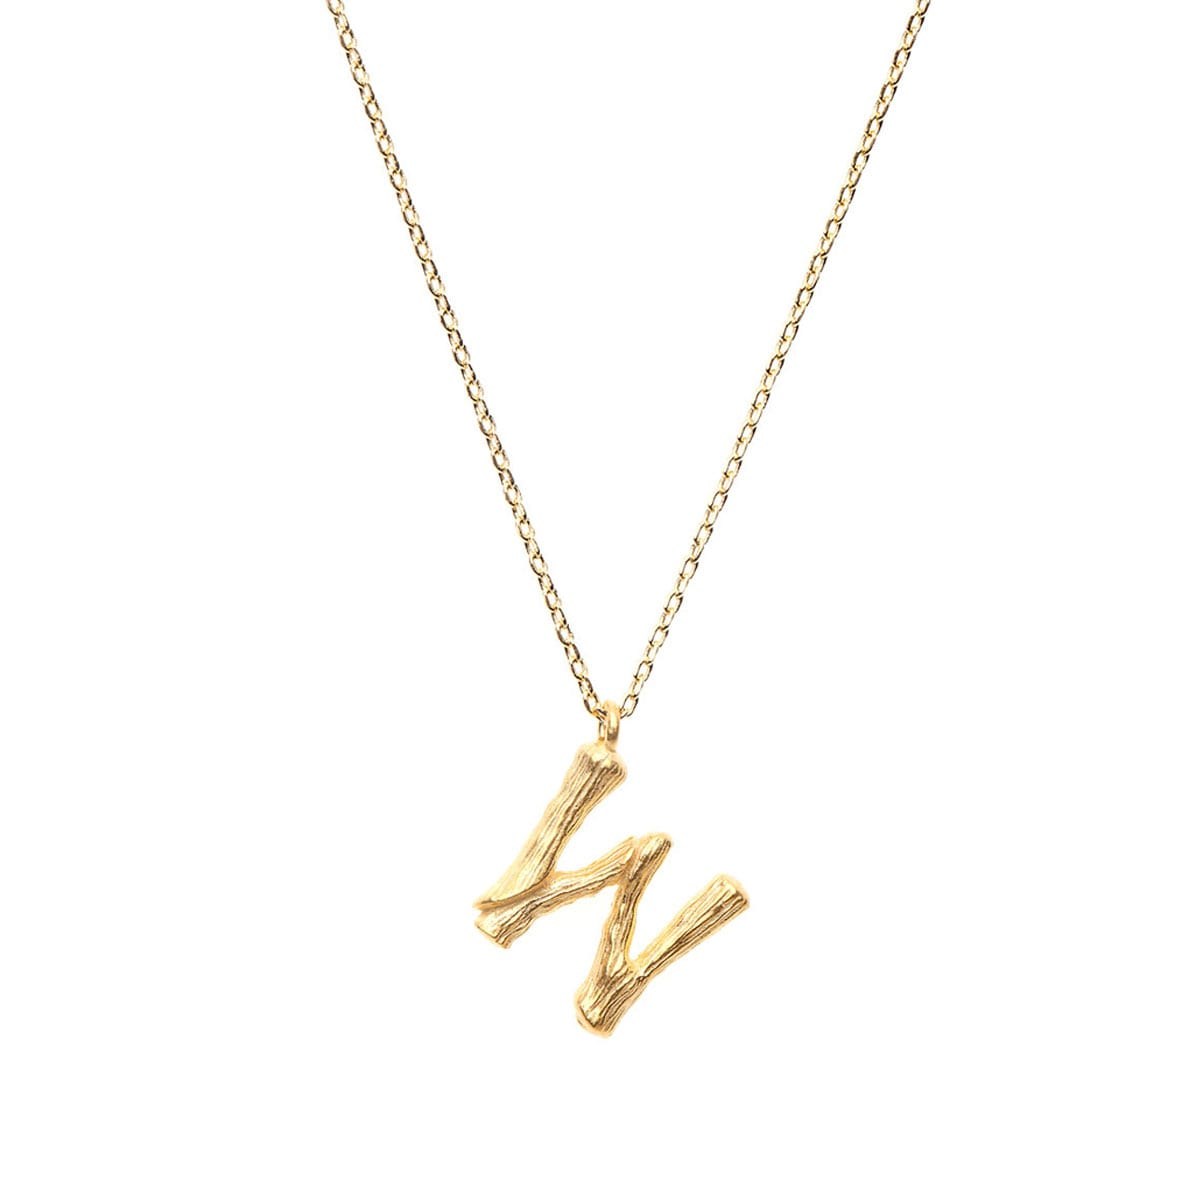 LETTER NECKLACE  24K GOLD PLATED - AMBER SCEATS